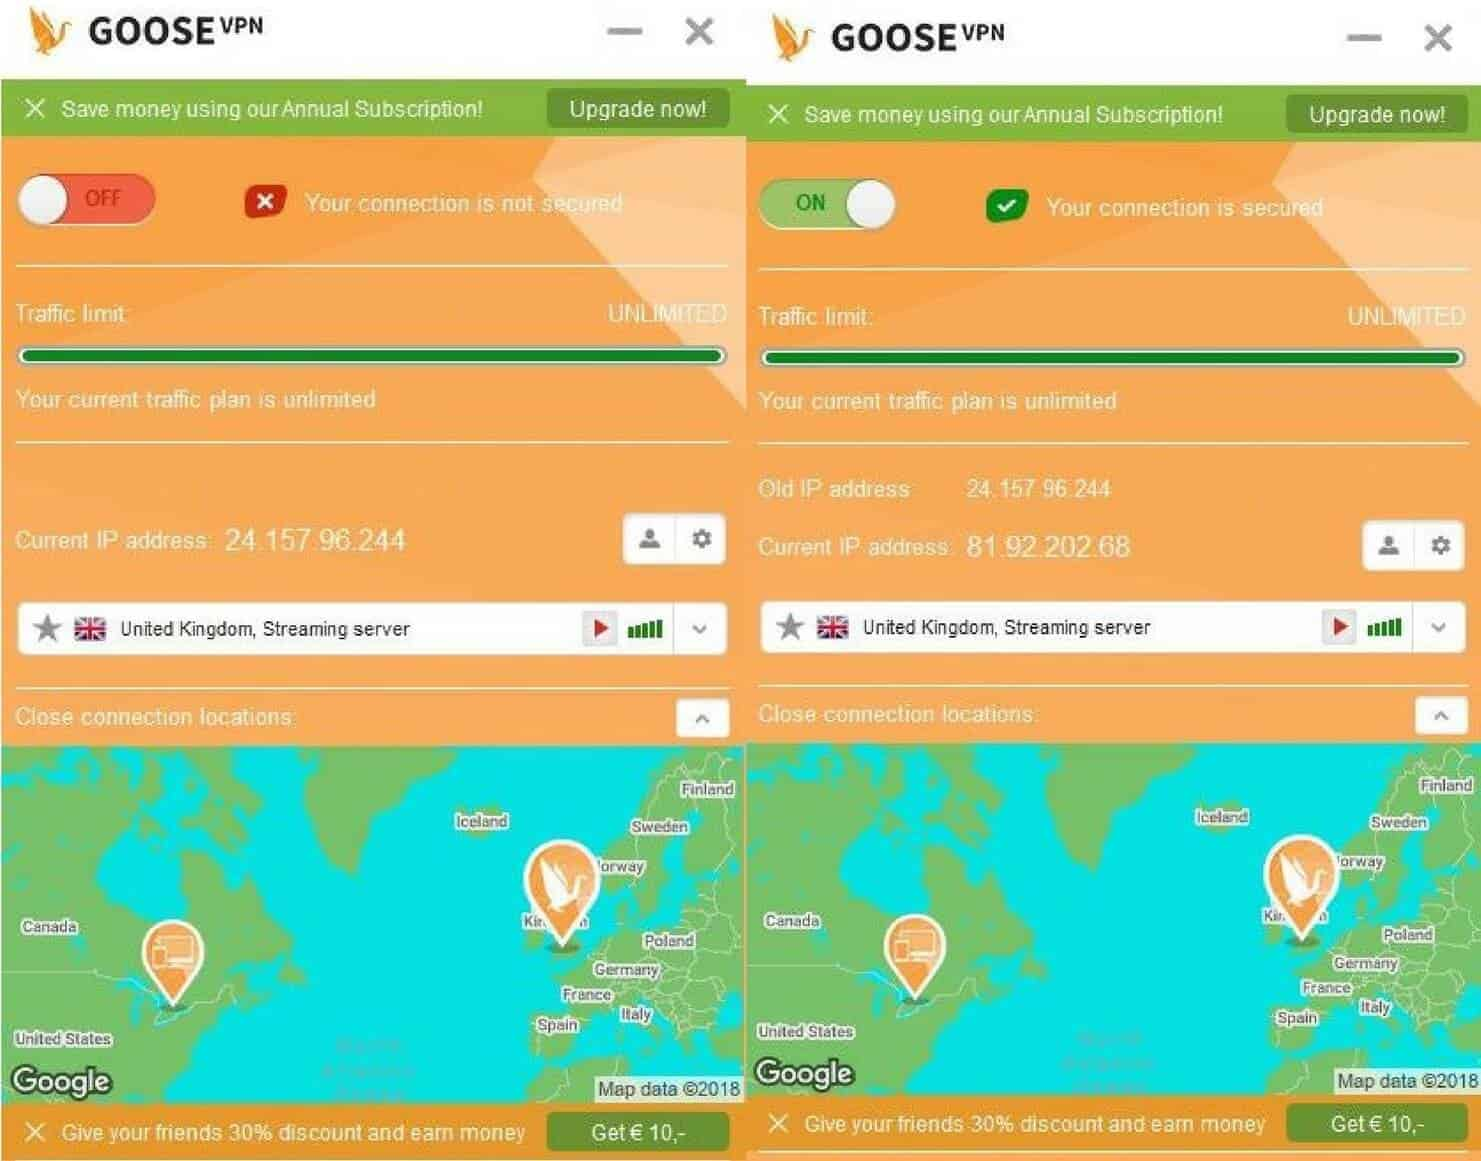 Goose Vpn Review 2018 Does It Log Your Activity How Fast Is You Need To Get A Kill Switch That Has The Additional Connections Server Selection Dropdown In Middle Of Screen Just Below Current Ip Address Youll Notice Some Servers Are Labeled With P2p Or Video